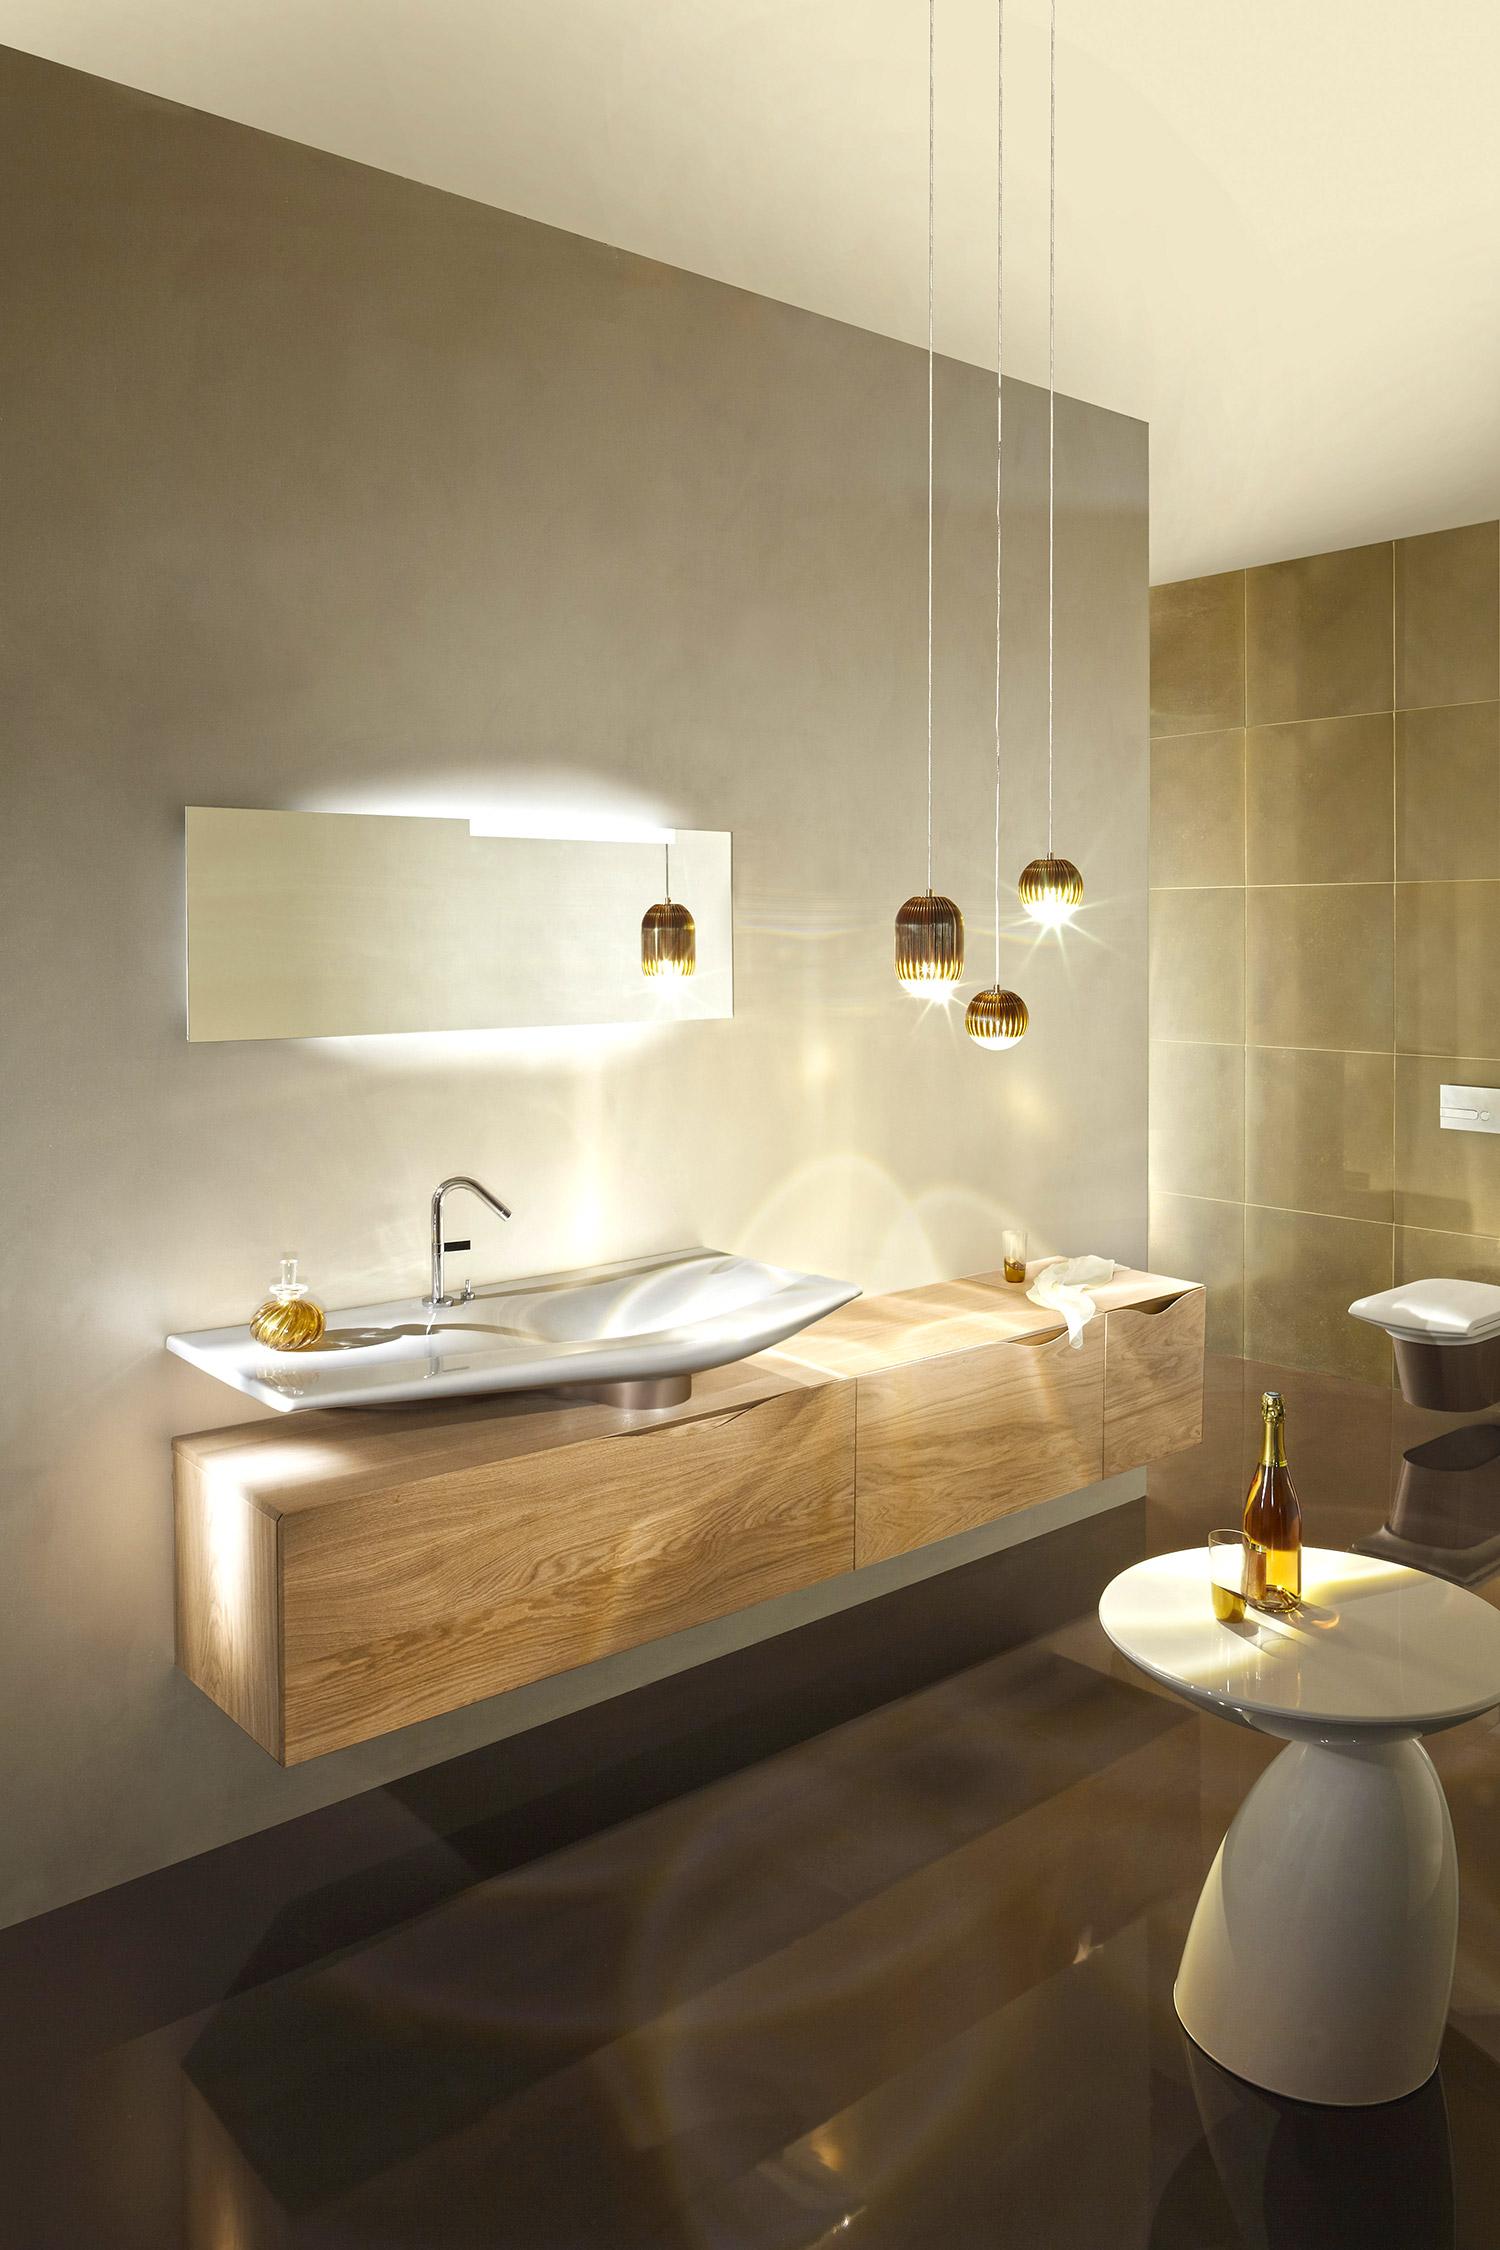 Kohler africa product page stillness collection specifile for Puertas que abren hacia afuera